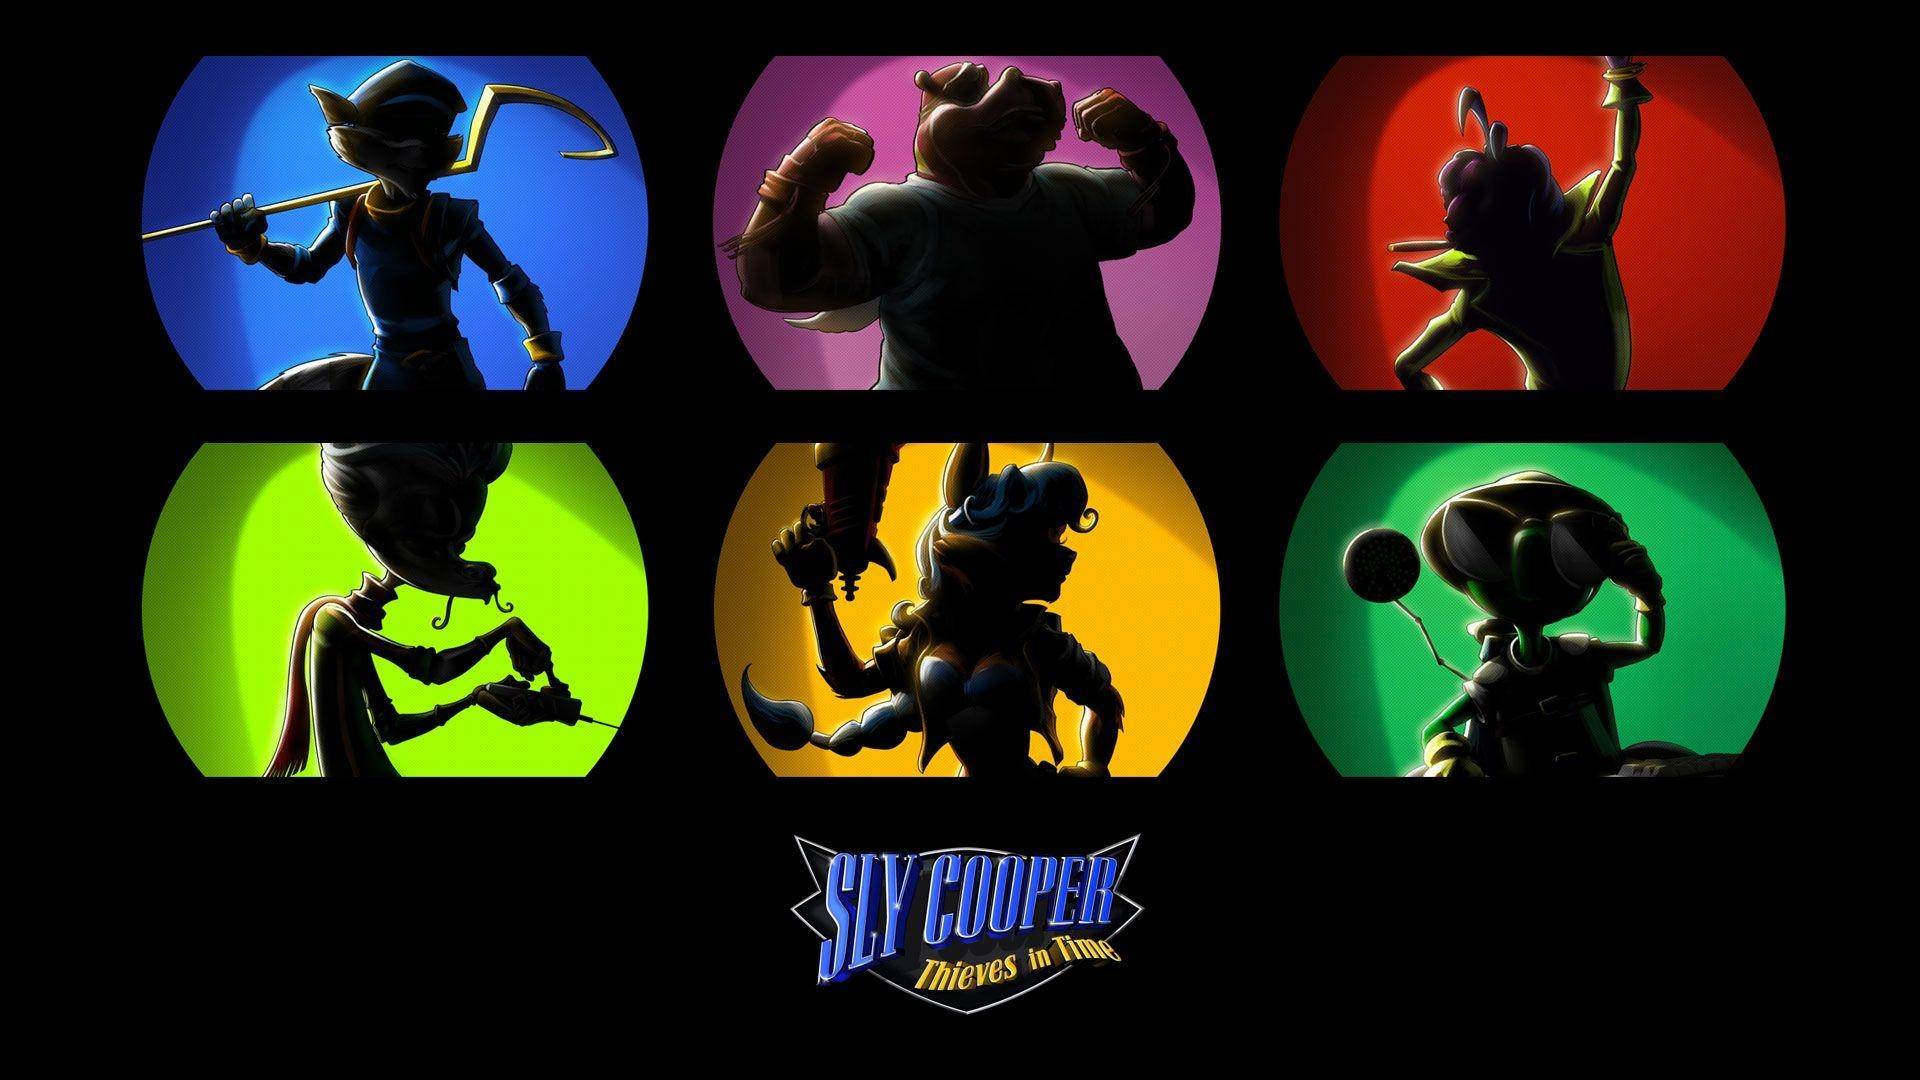 Sly Cooper Thieves In Time Ps Vita Demo (HD Sound Quality) – YouTube